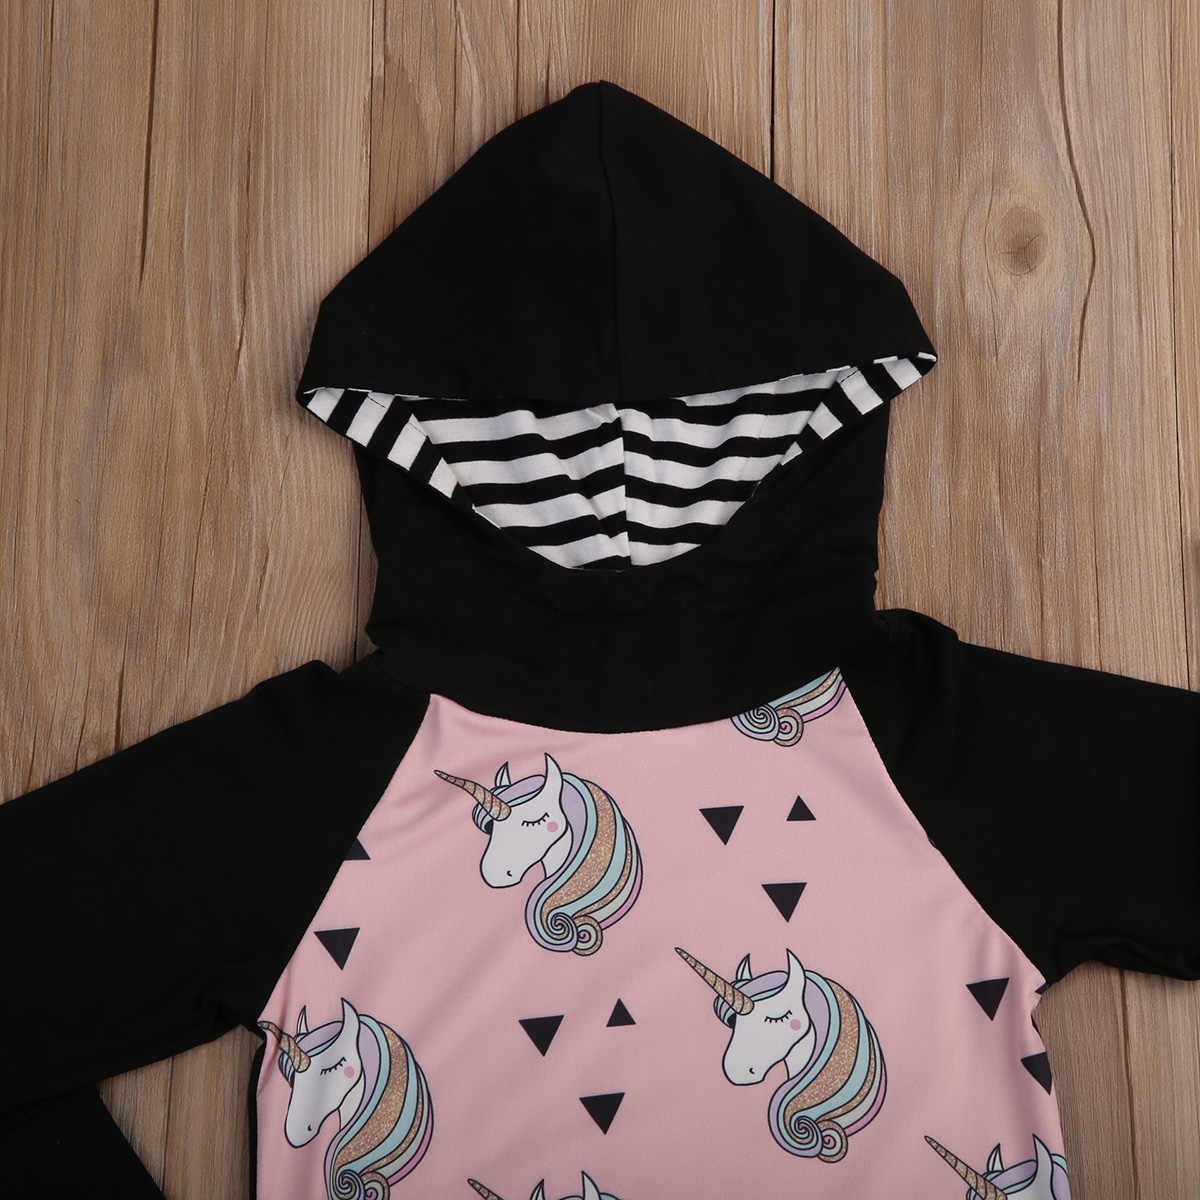 c4994d816 Detail Feedback Questions about Toddler Kids Girls Long Sleeve ...